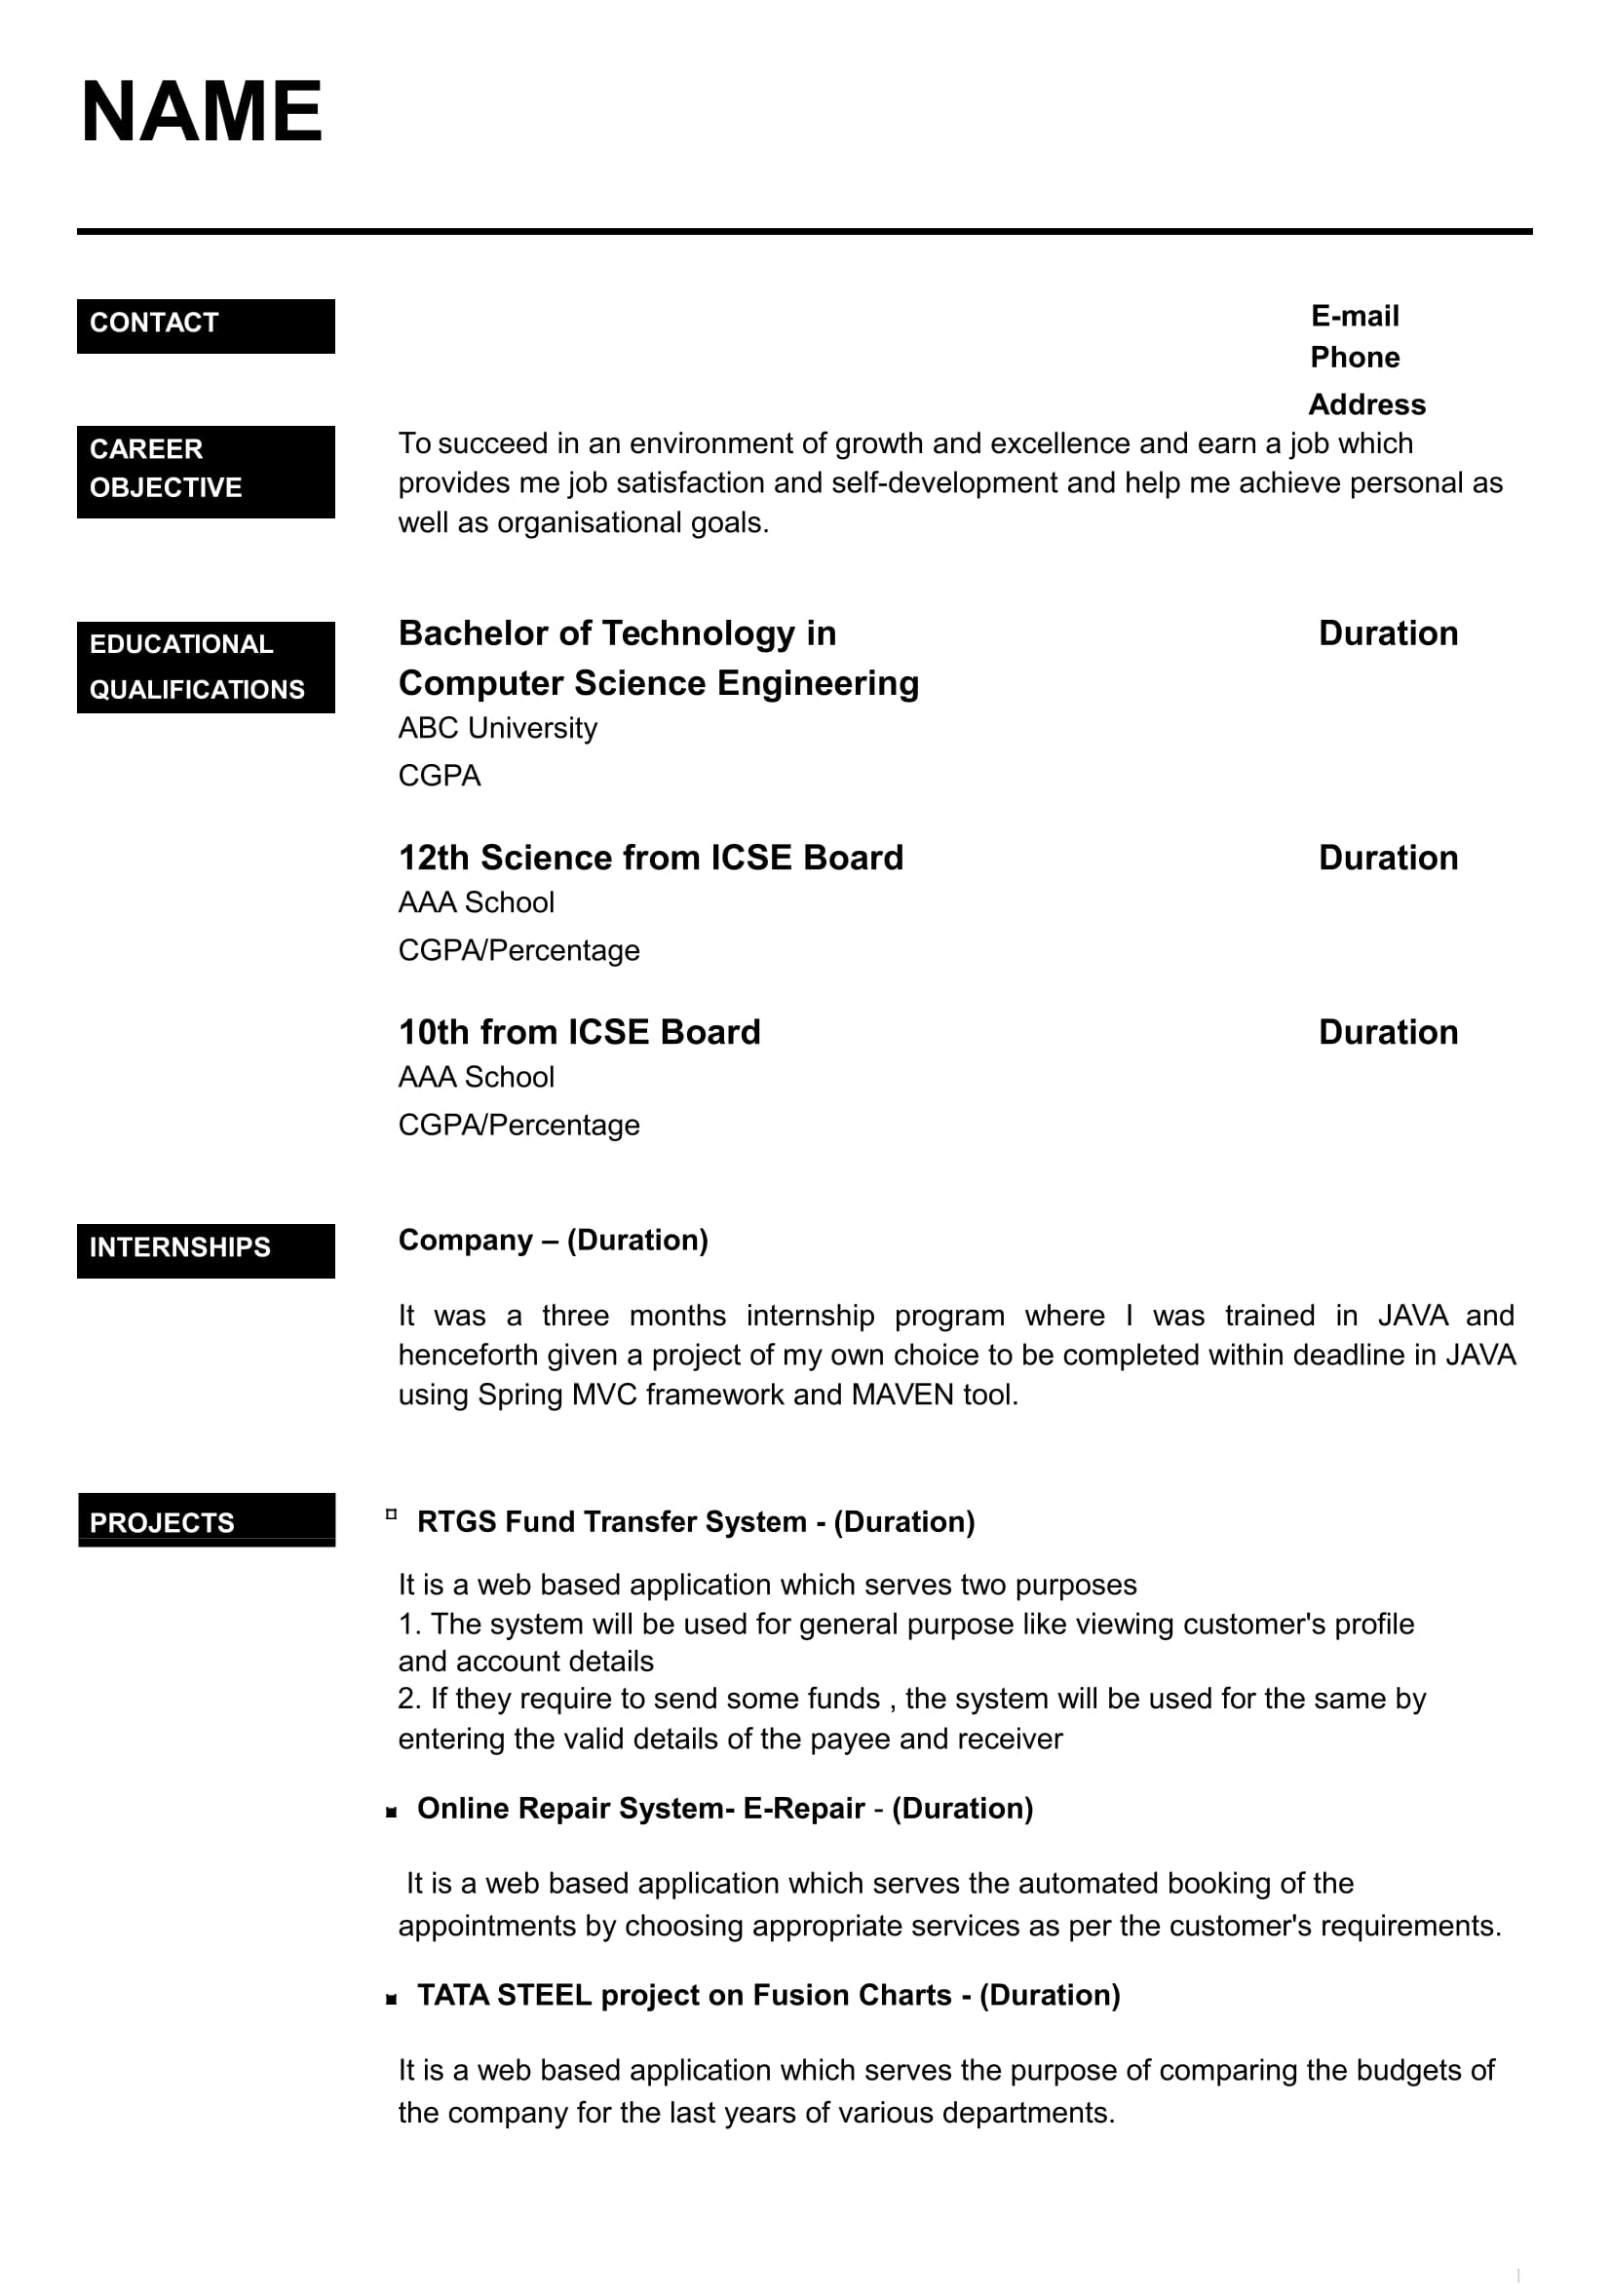 professional resume templates for computer science engineer